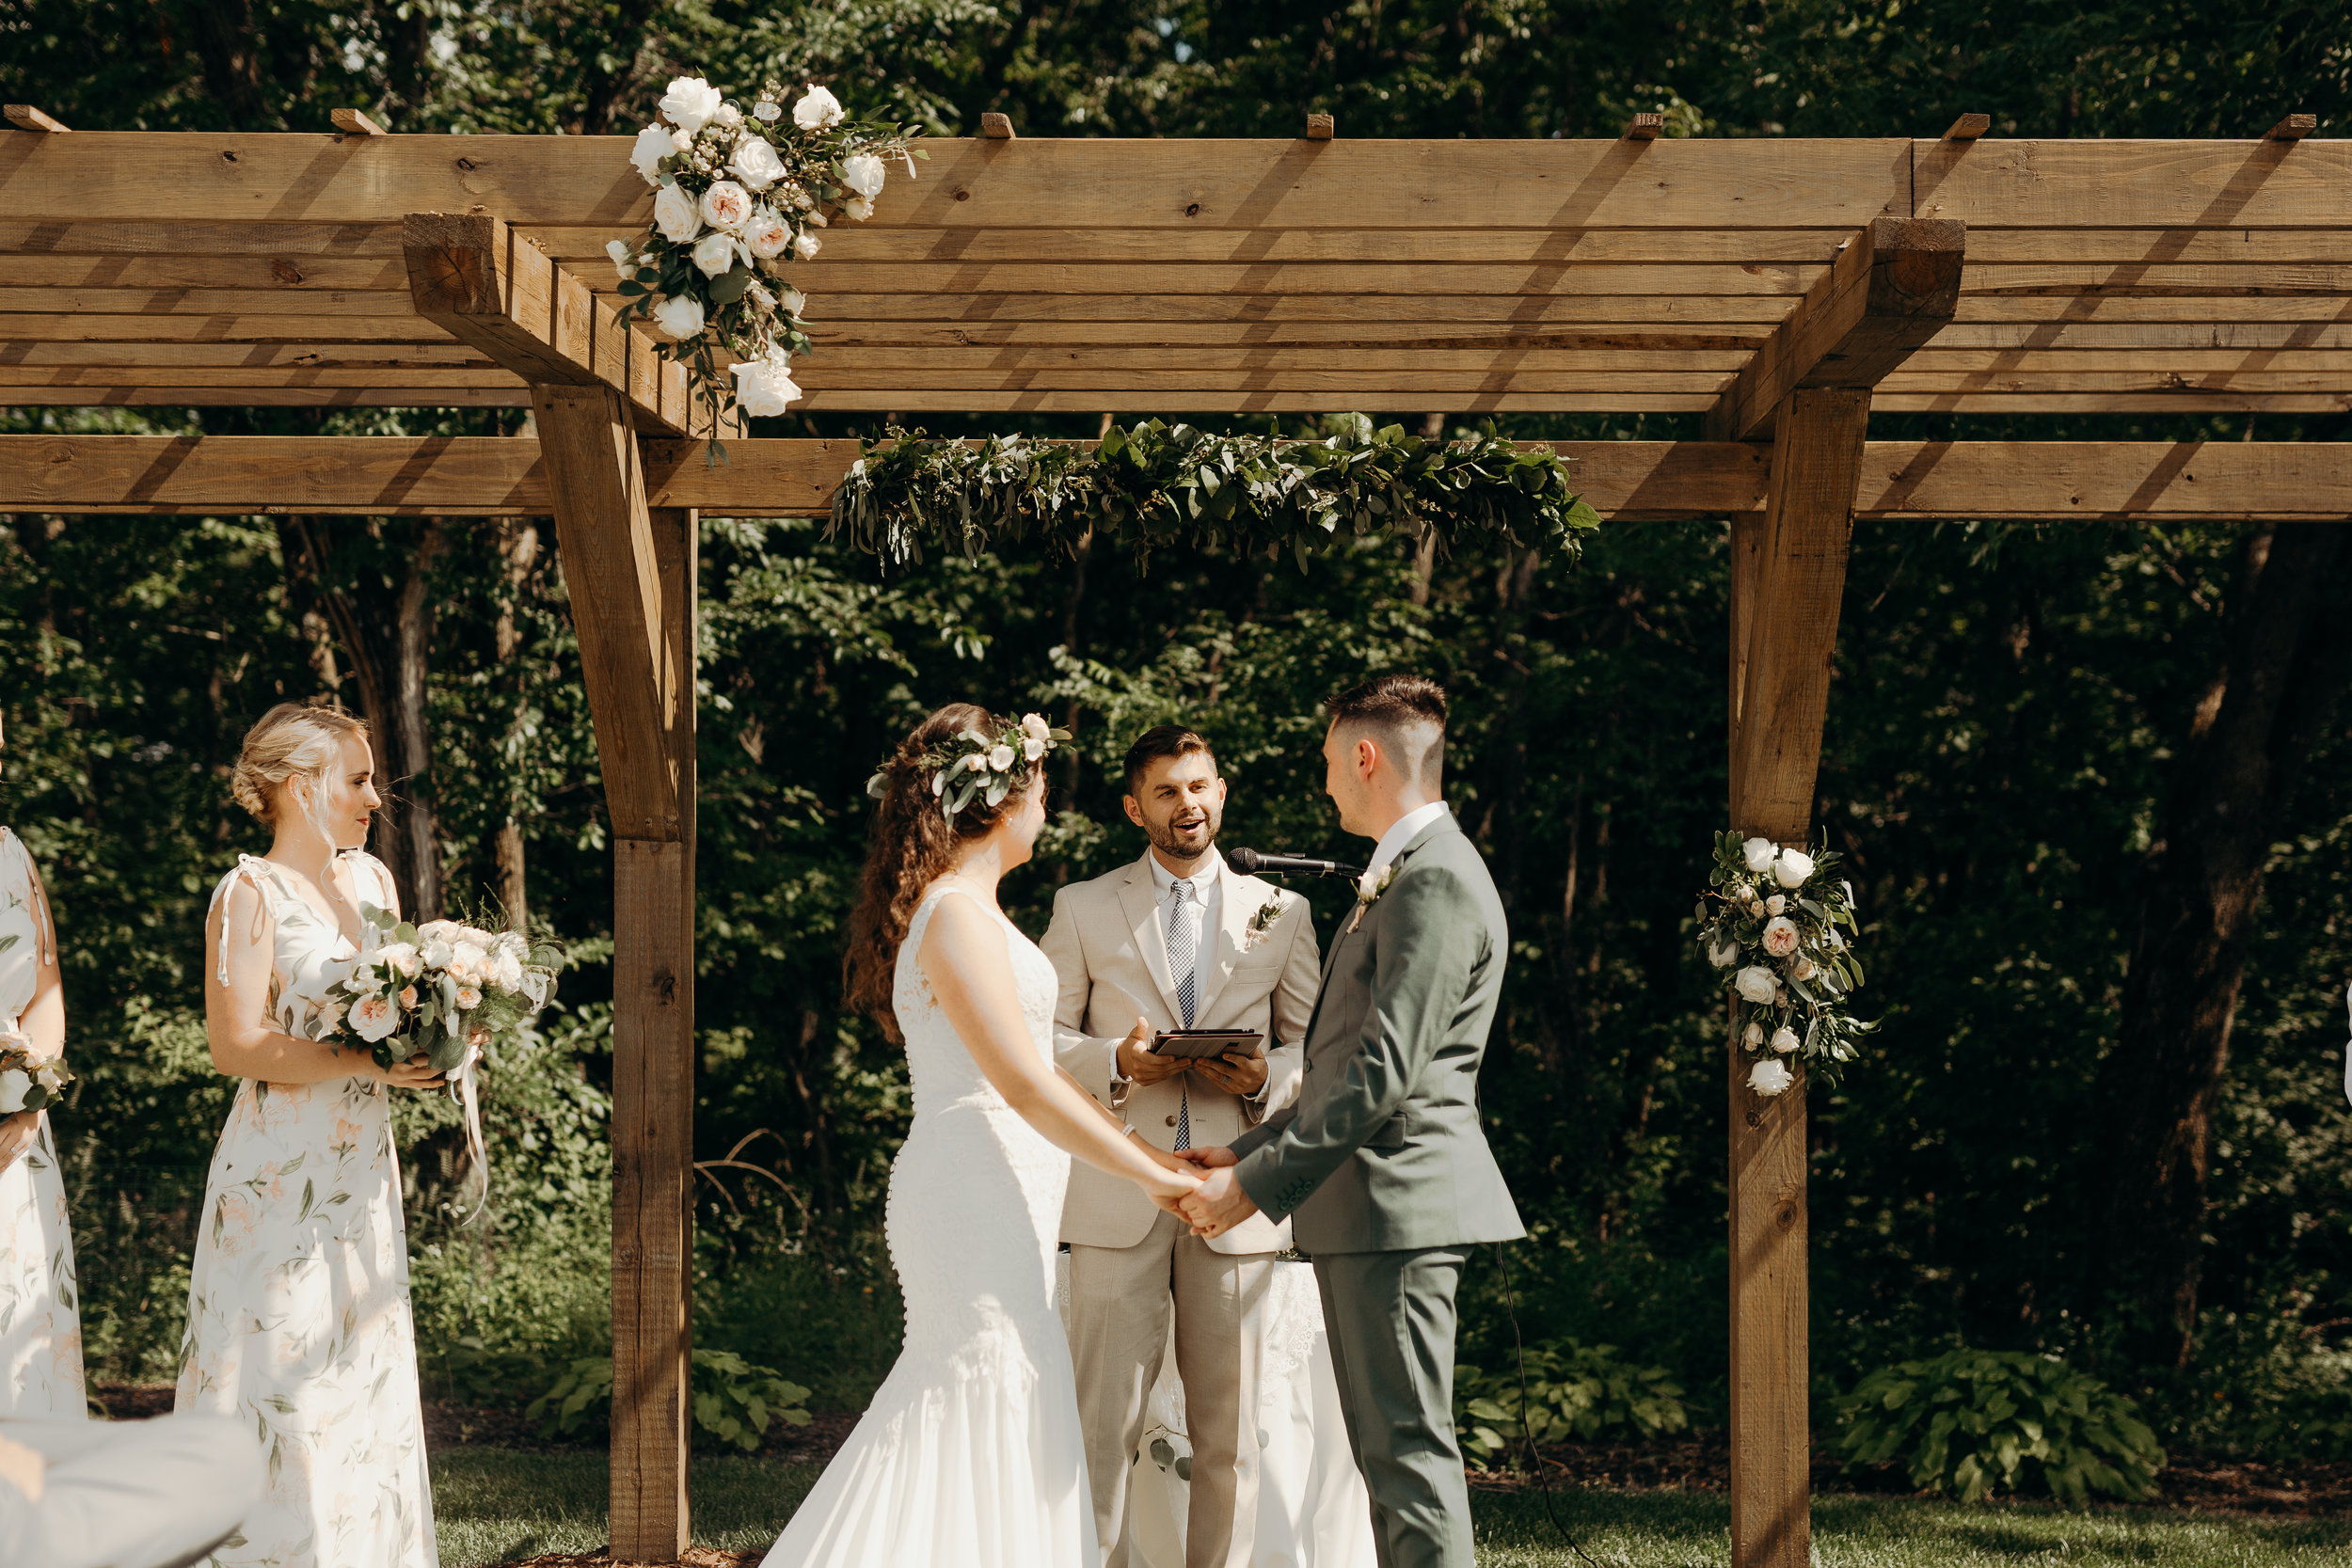 Bride in white lace dress with blush and white floral crown, from Lavender Blue Floral. Groom in sage green tux with floral tie in blush. Bride and groom stand under arbor with floral arch in white and blush. Bridesmaid stands by bride in blush and light green floral long dress.